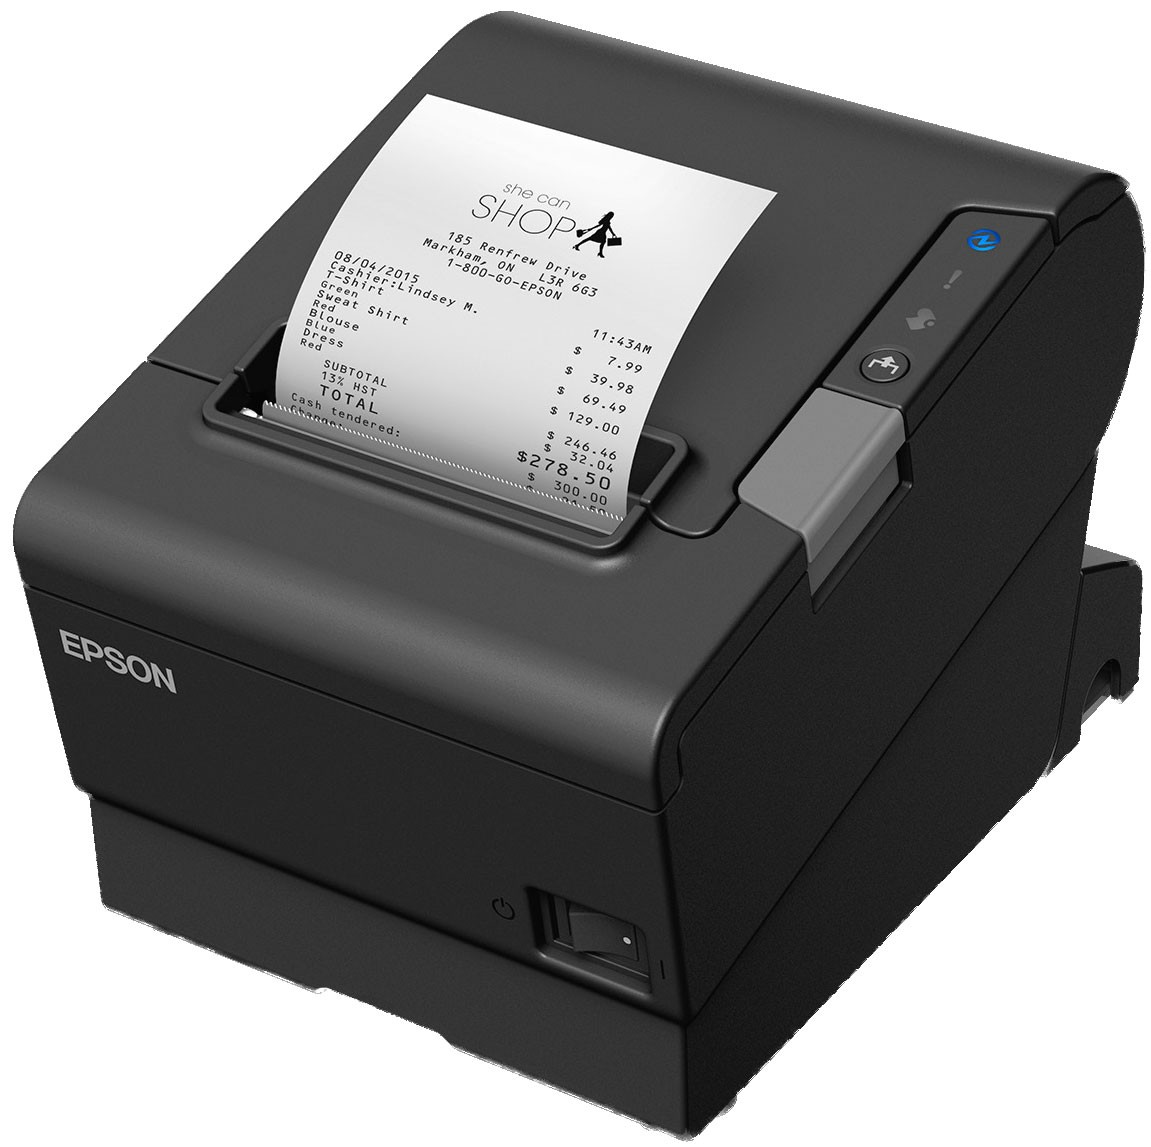 Epson / Micros TM-T88VI Ethernet Printer; black (TM886E2NG)